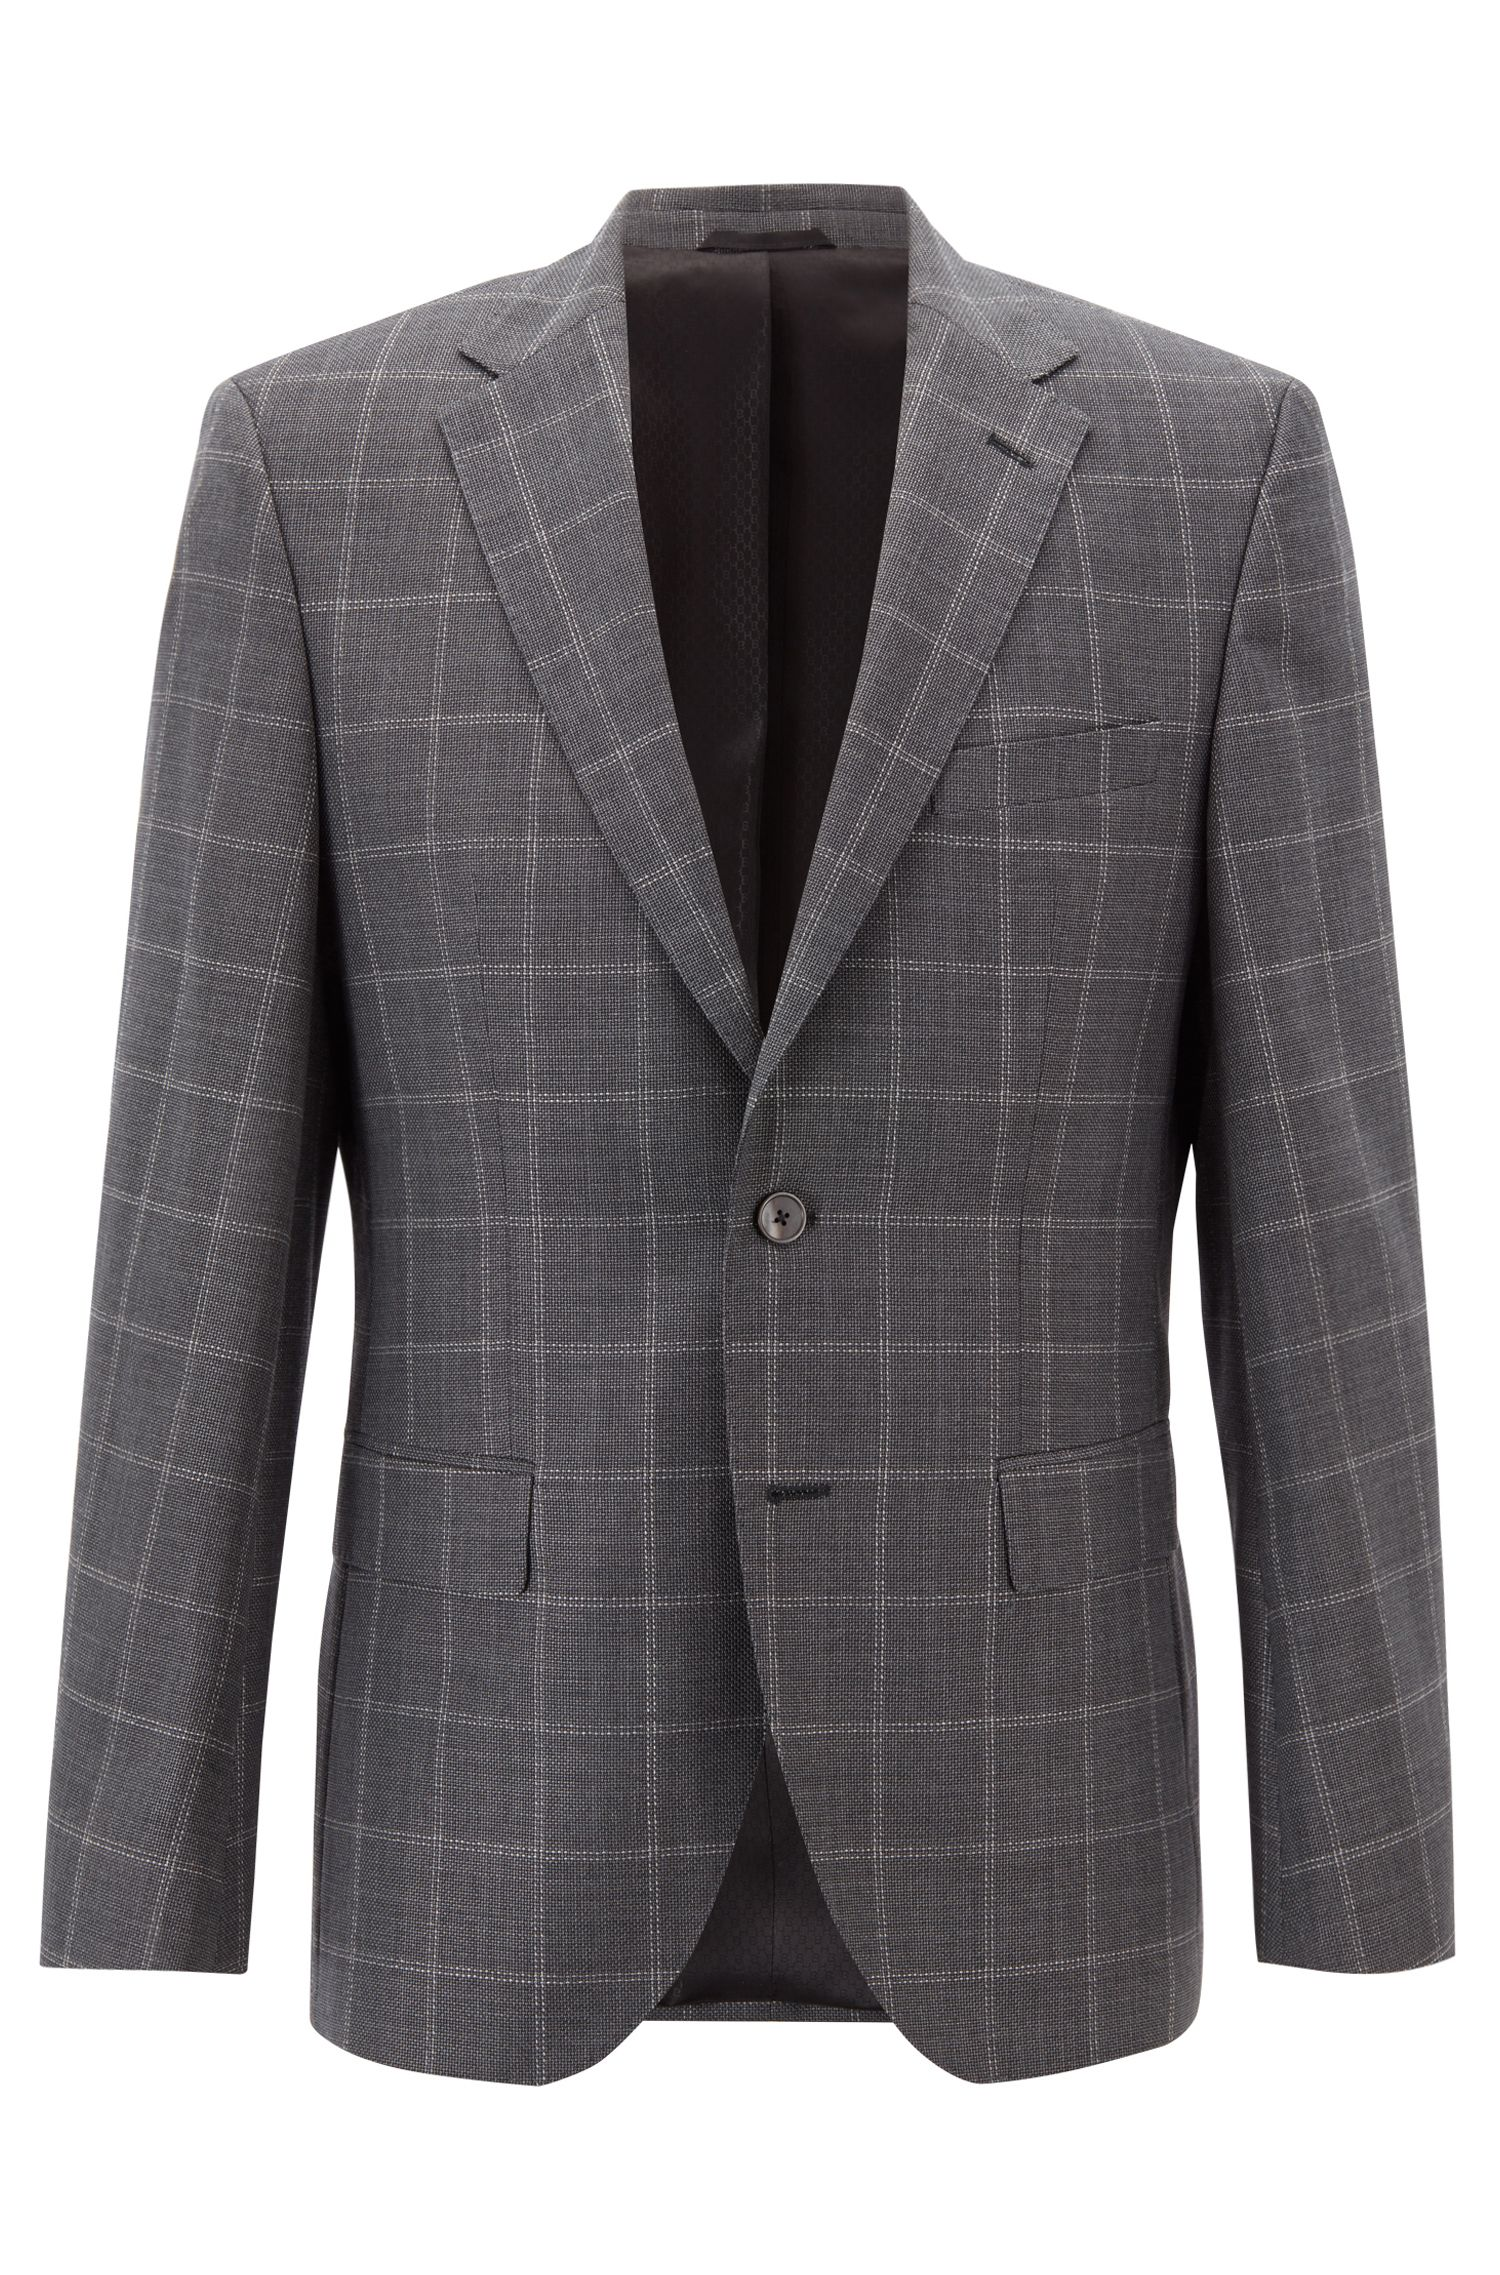 Regular-fit jacket in checkered wool with monogram detailing, Silver